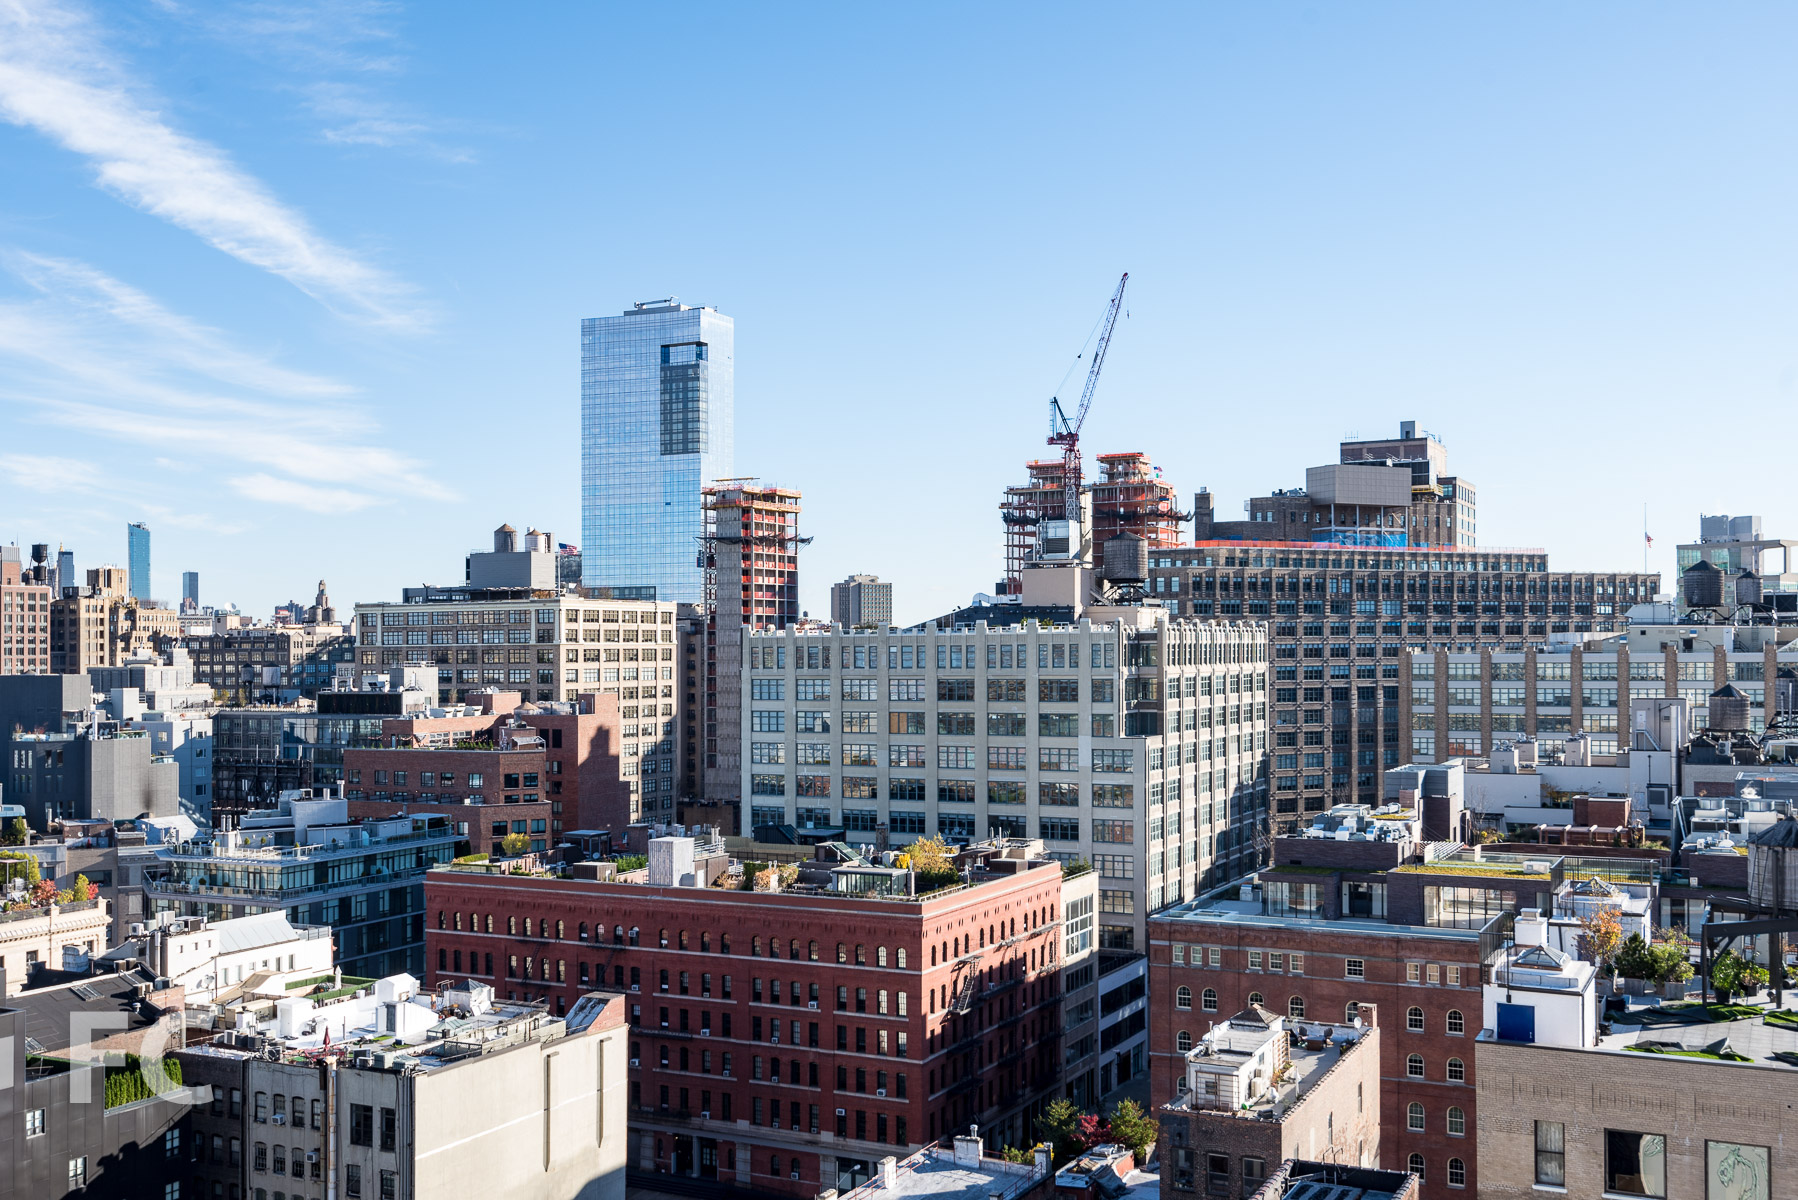 View east from the rooftop terrace towards SoHo.